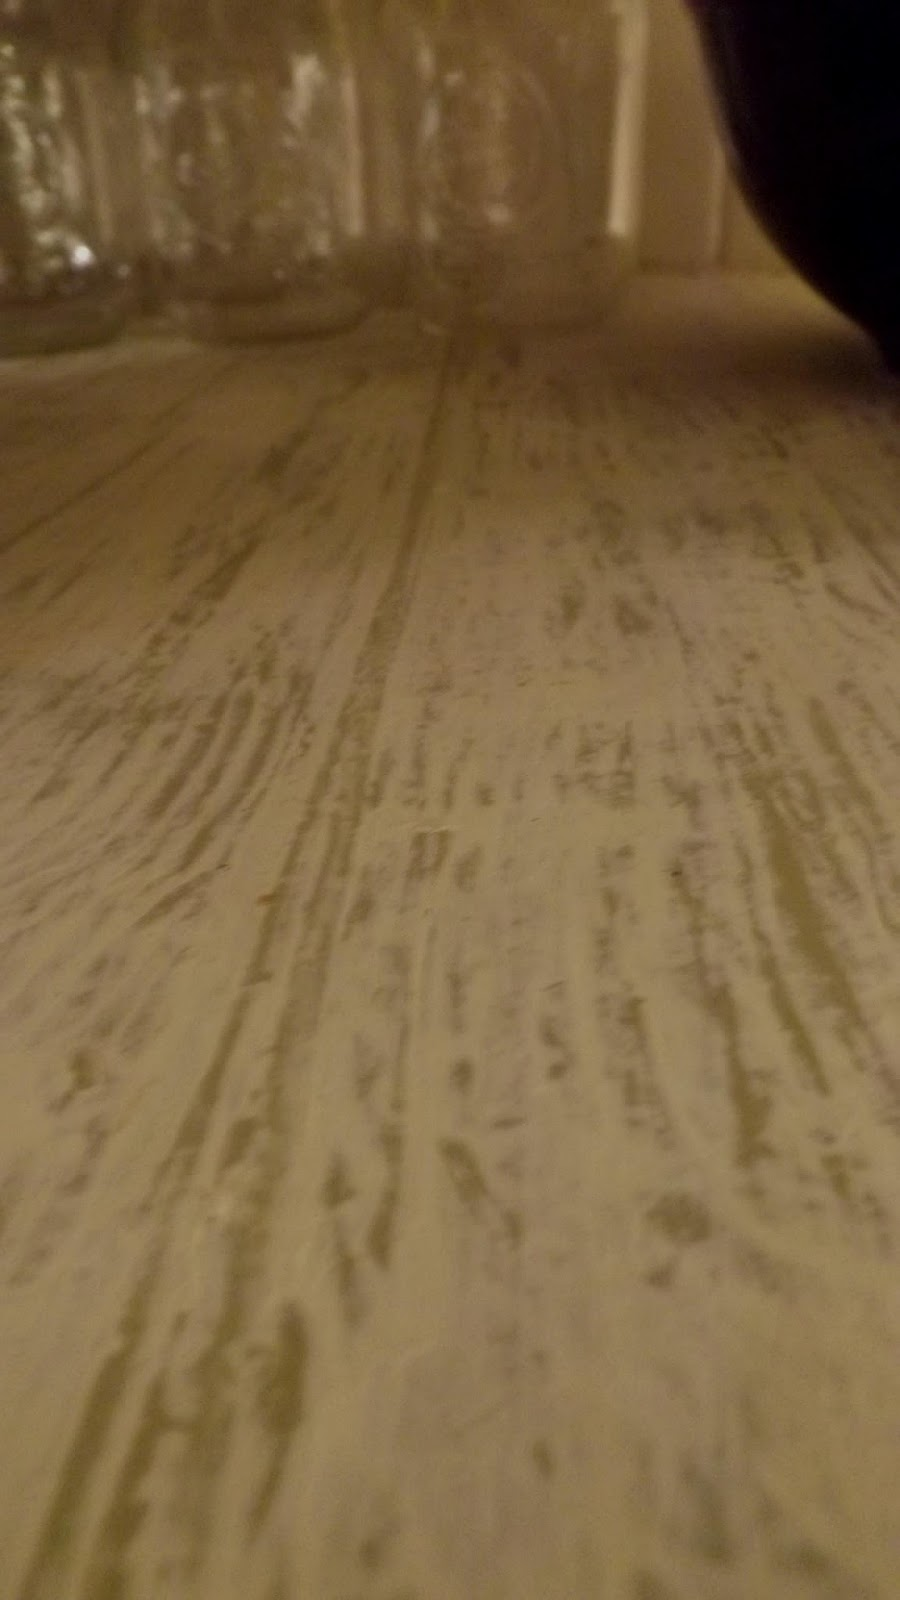 Countertop Paint Wood : immediately after painting a small area i used the wood rocker wood ...